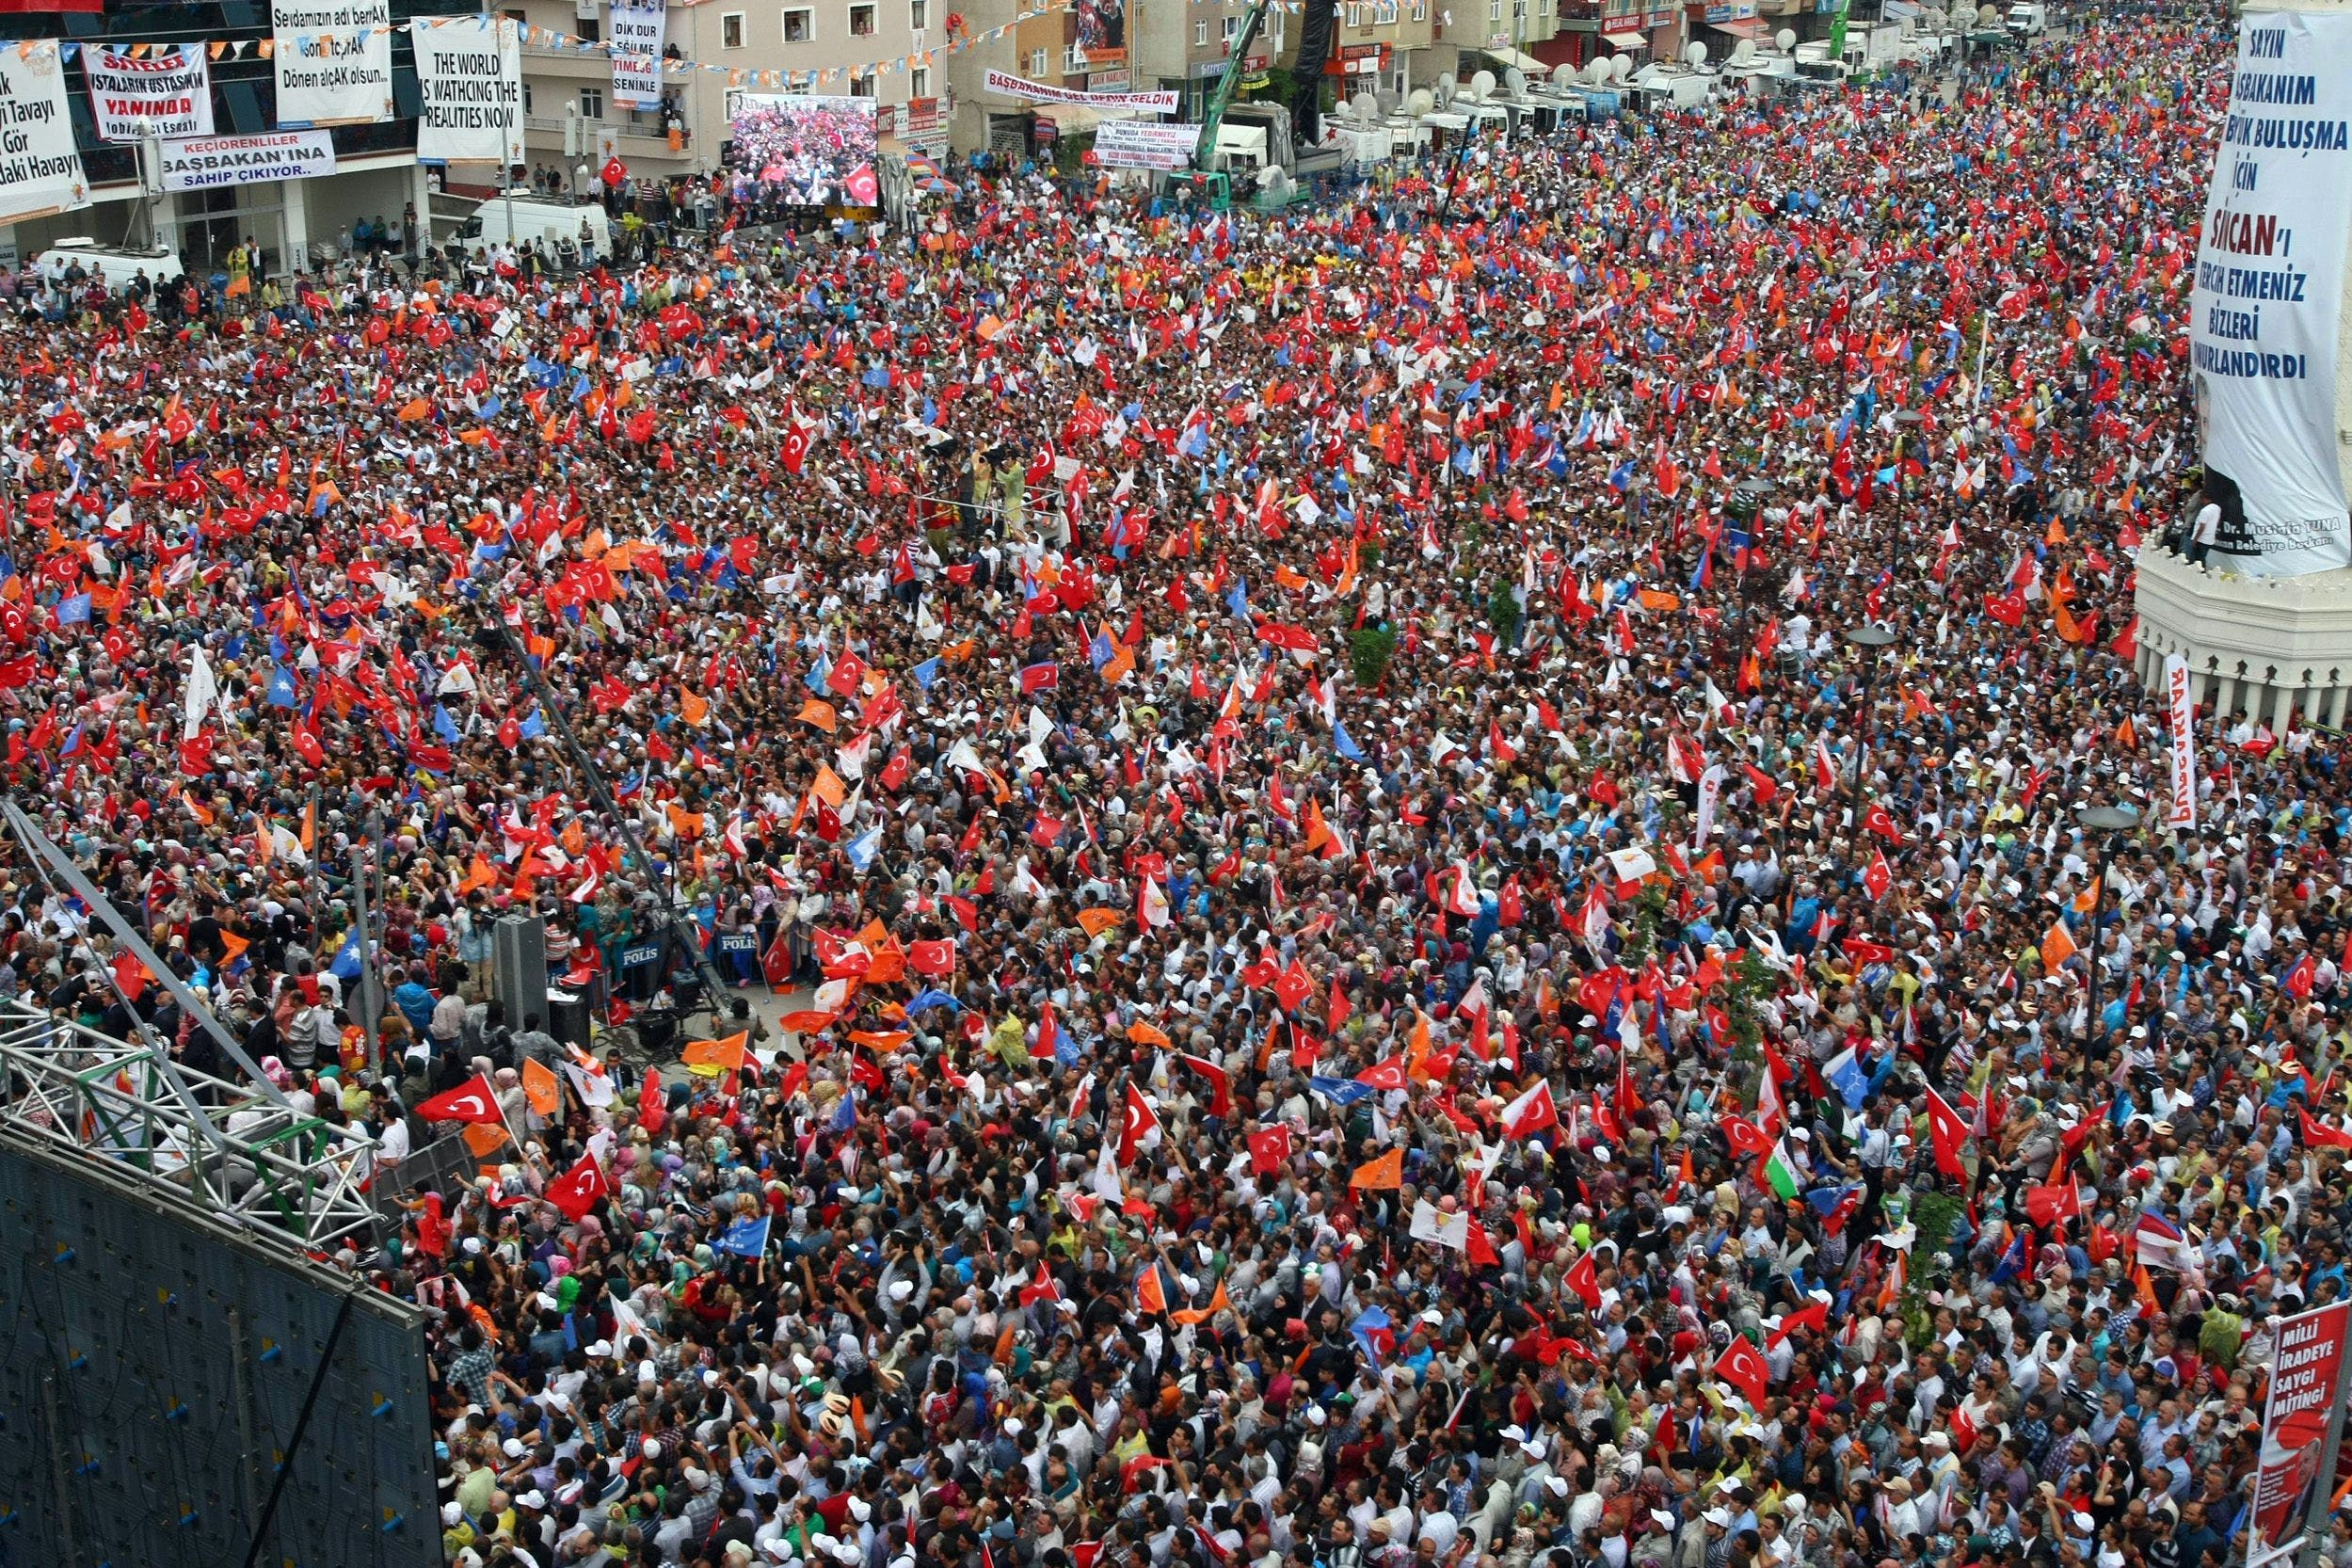 Supporters of Turkish Prime Minister Recep Tayyip Erdogan listen to him speak during a rally in Sincan, on June 15, 2013. (AFP)